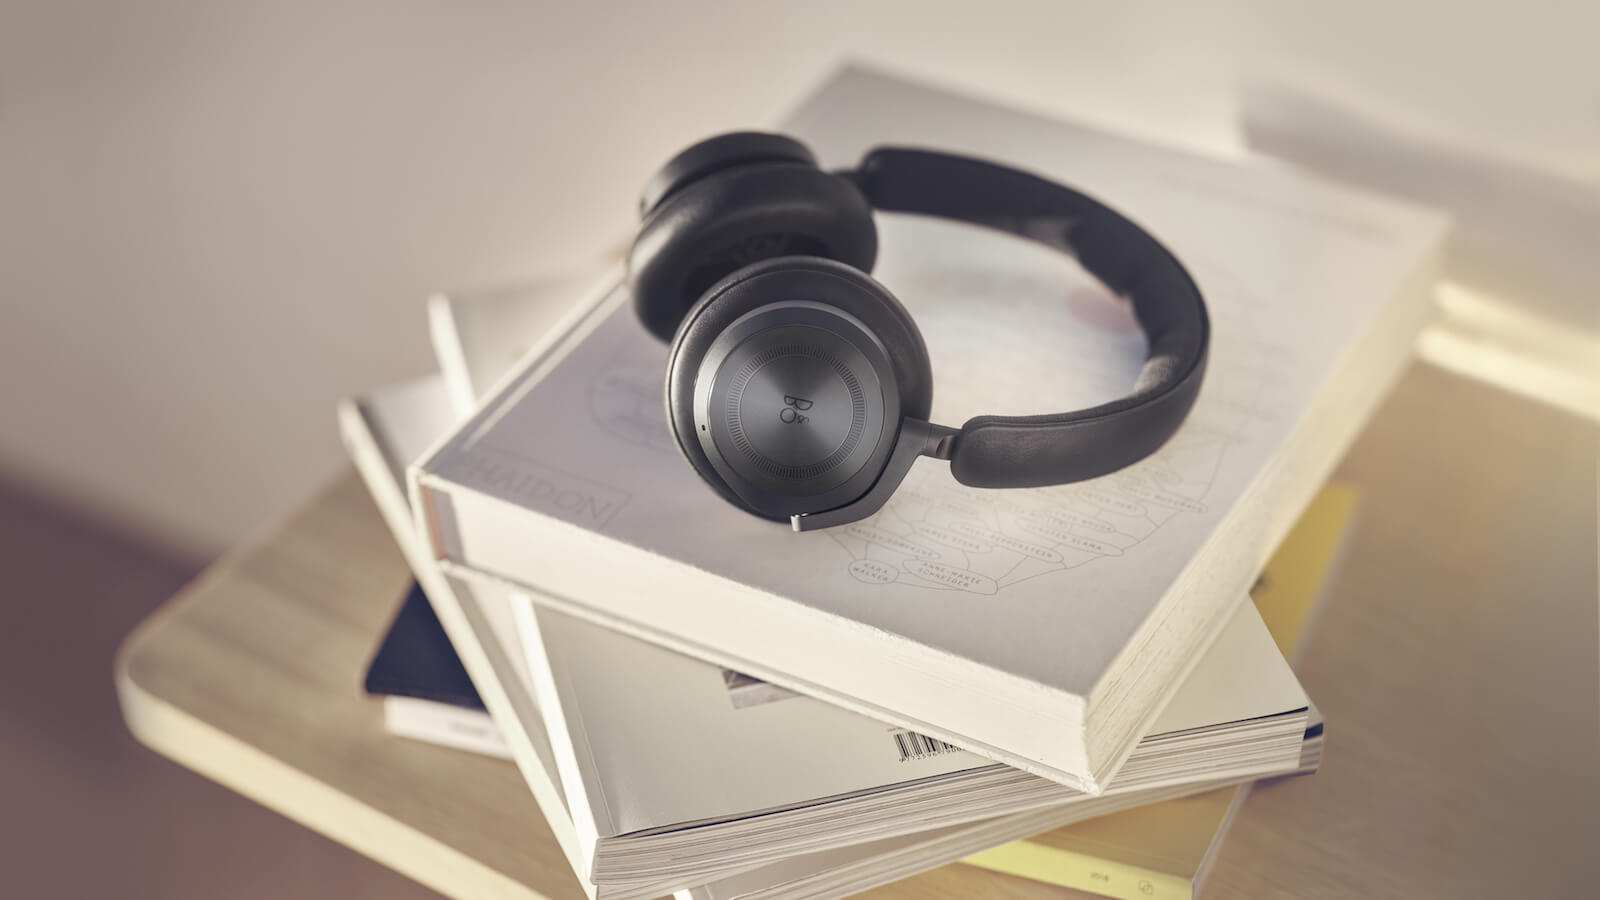 Bang & Olufsen Beoplay HX ANC headphones offer a 40-hour battery life & 40mm drivers